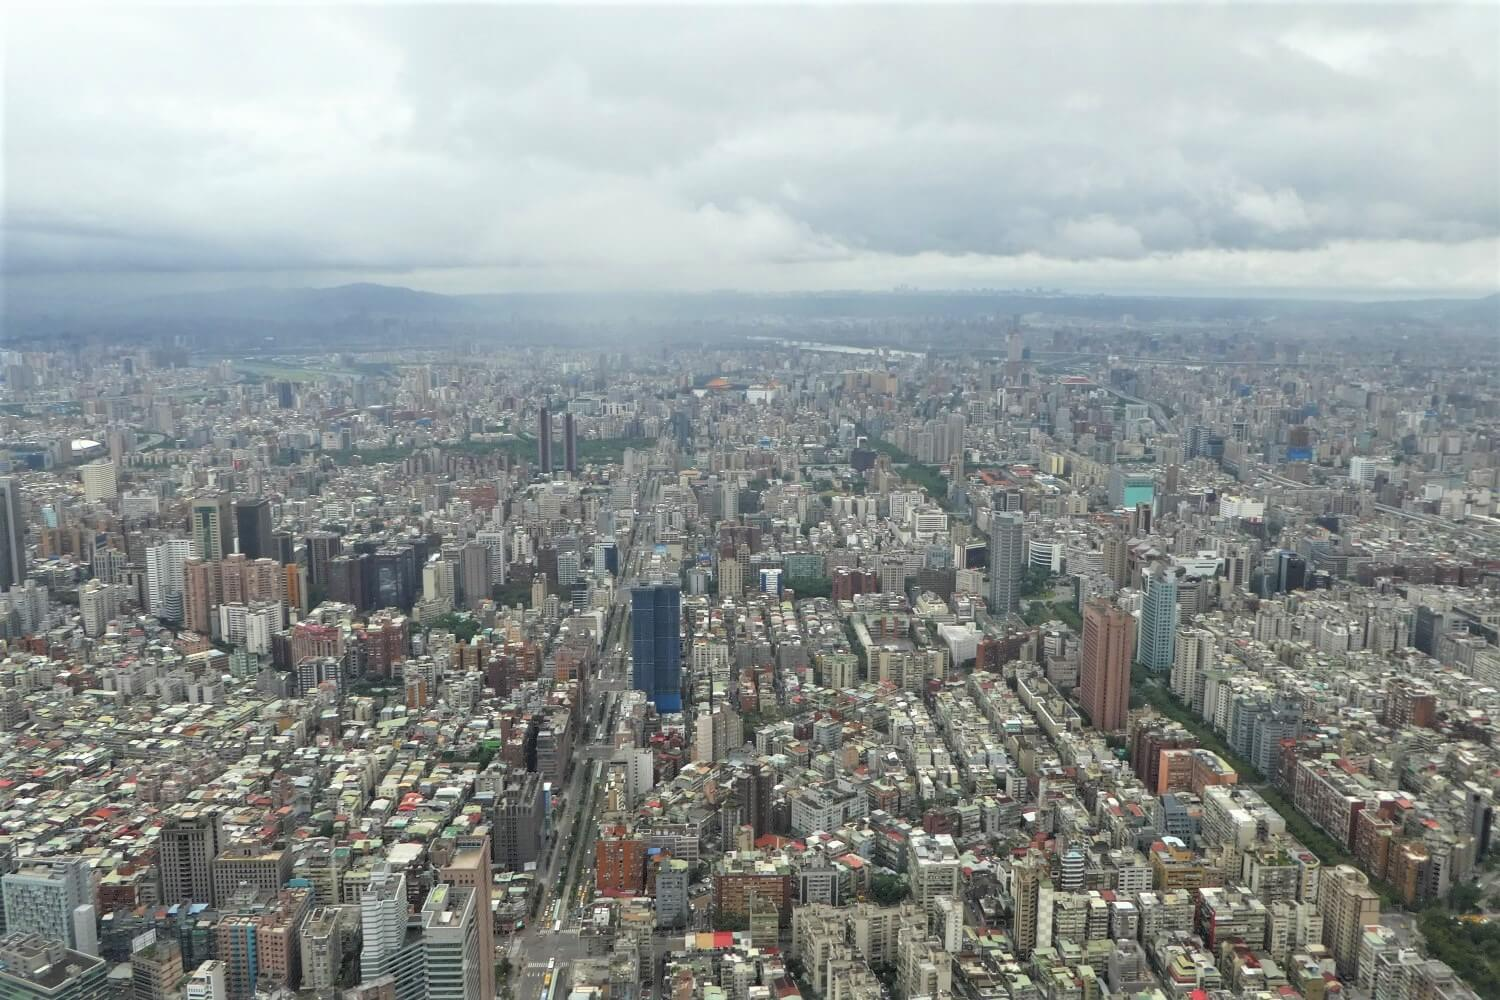 View from the Taipei 101 in Taiwan